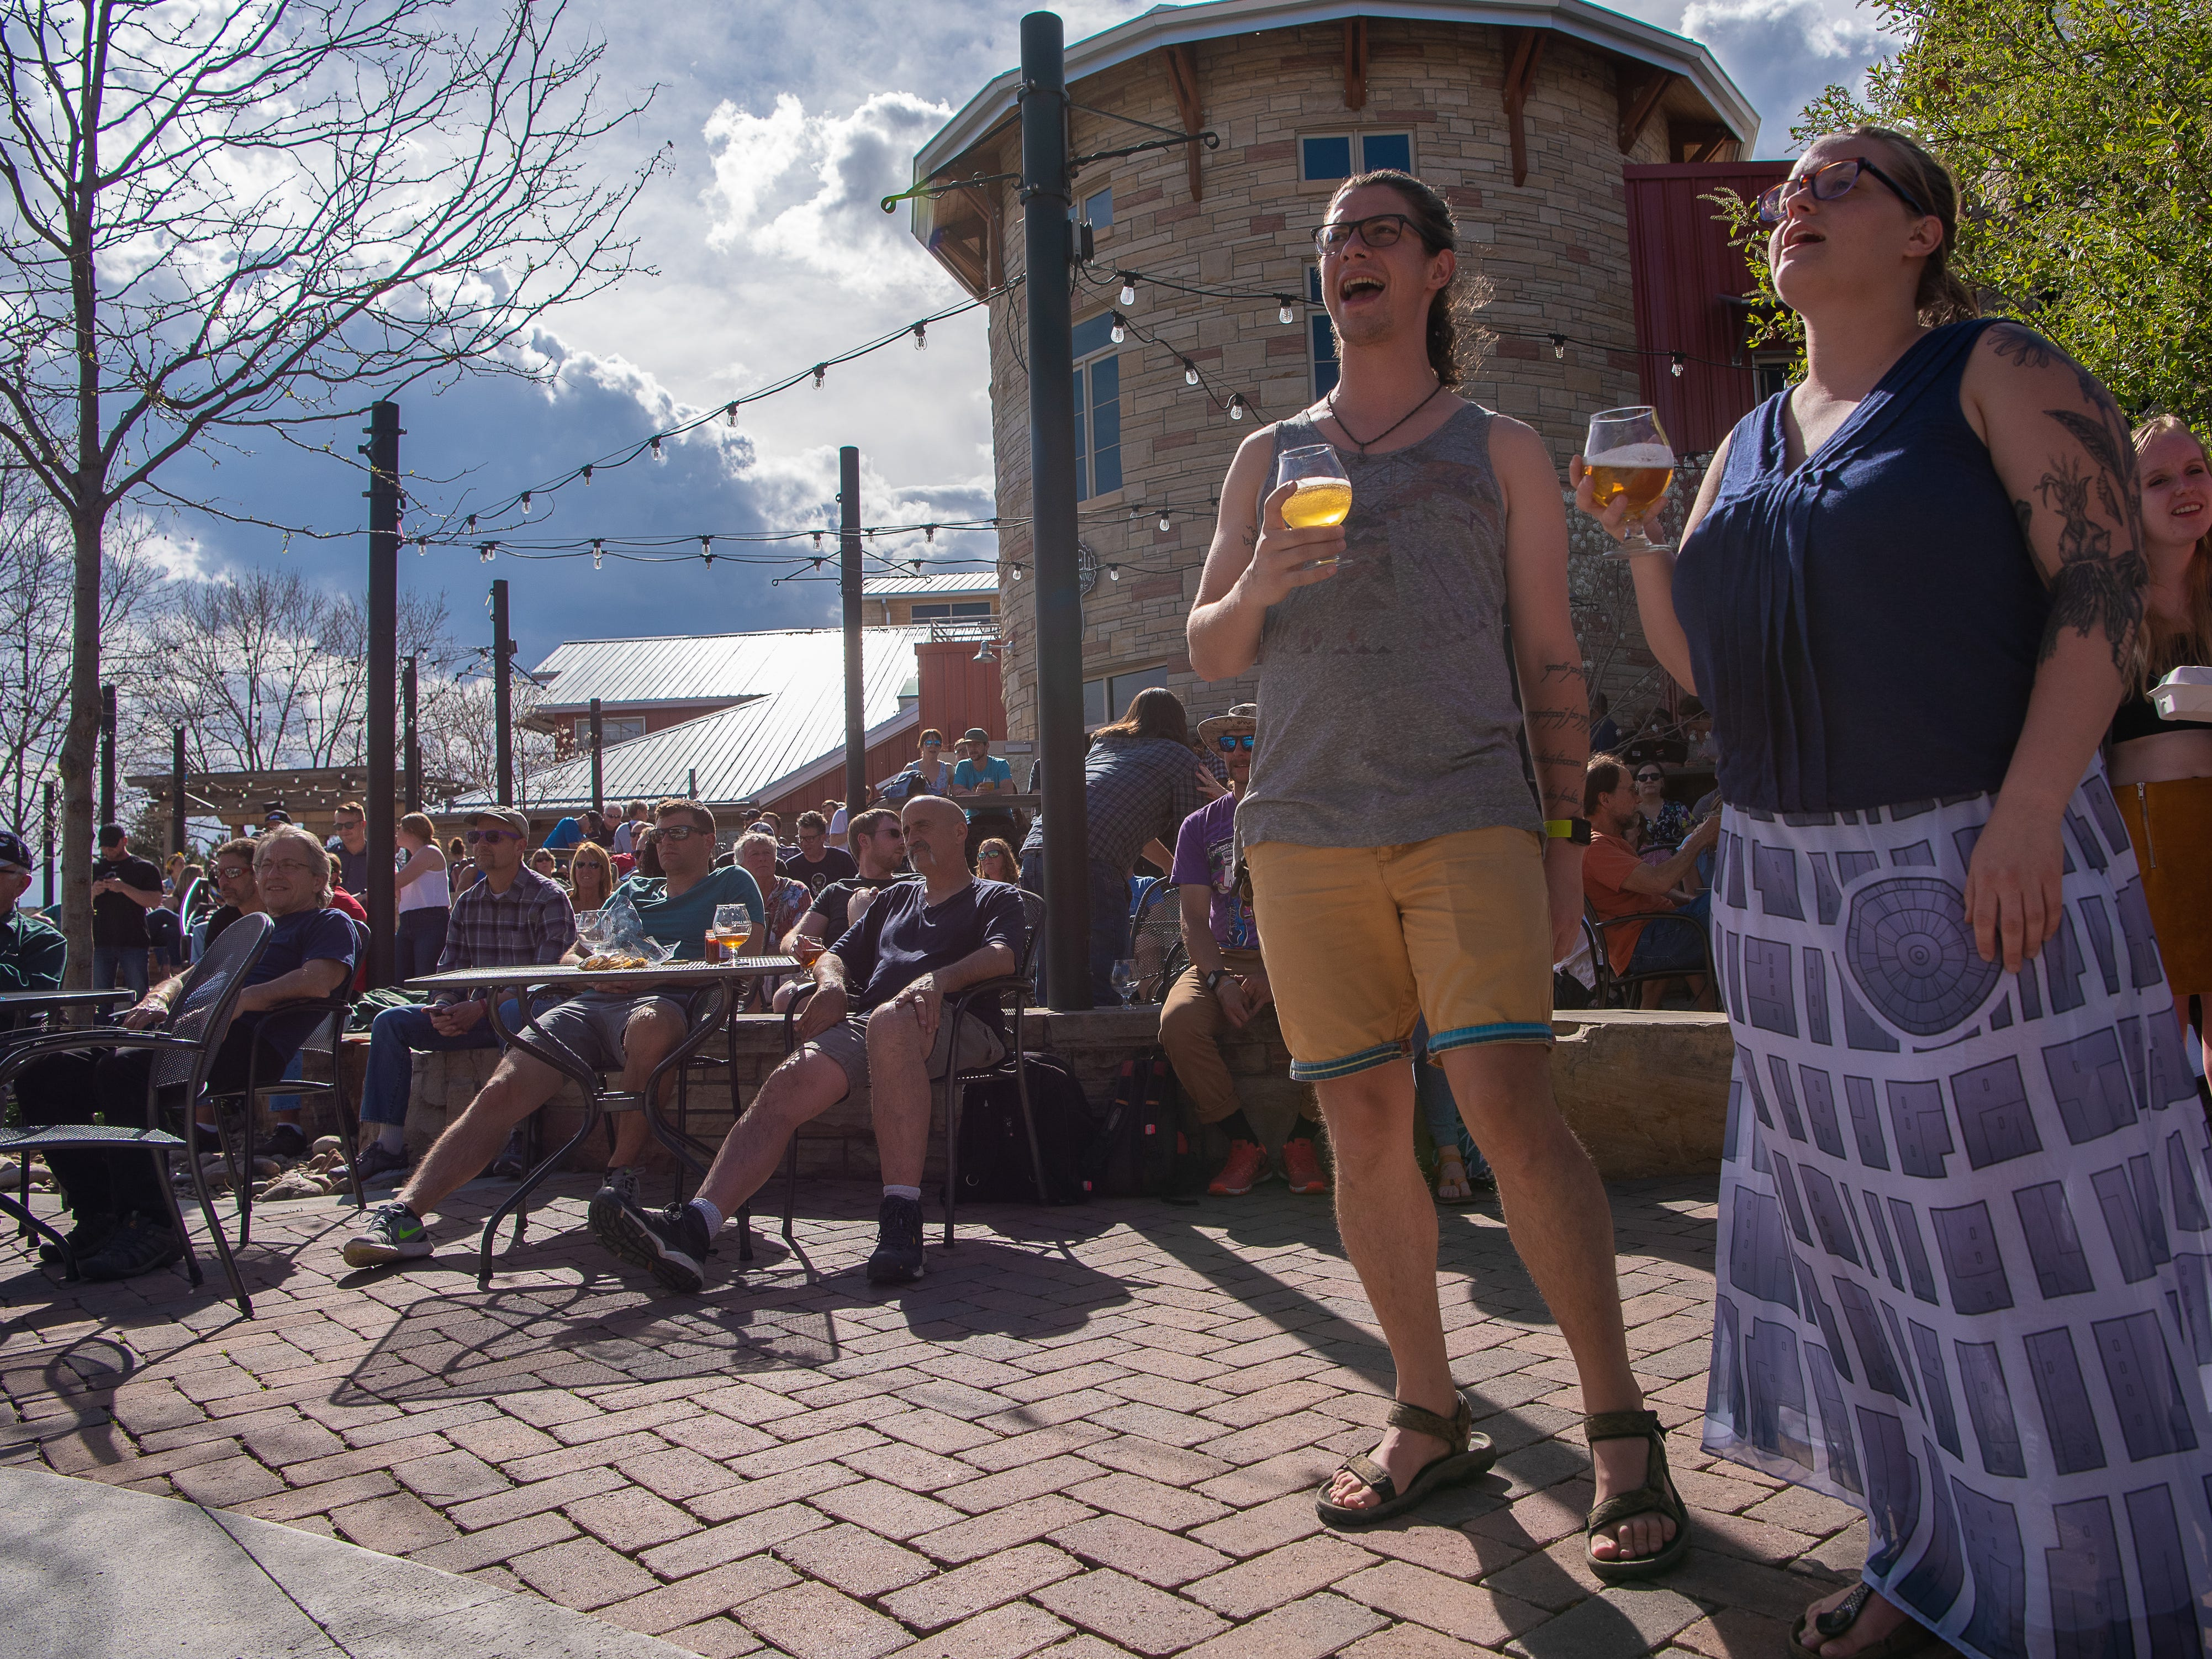 Eddy Anderson and Sienna Valente-Blough enjoy a set by No Doubt About It at Odell Brewing Co. during the FoCoMX XI music festival on Friday, April 26, 2019, in Fort Collins, Colo.